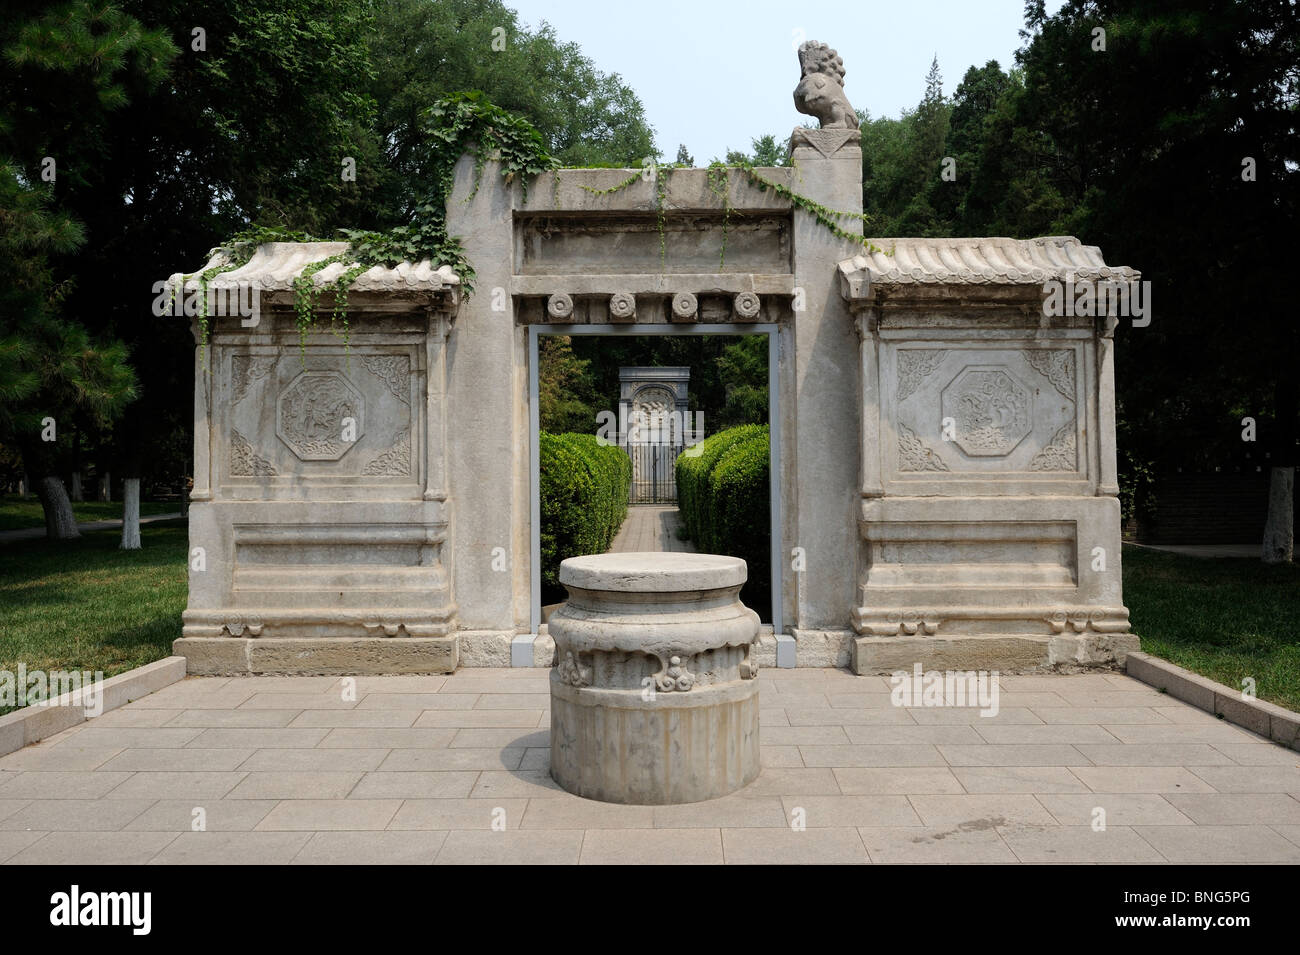 Stone memorial arch at the tombs of the Jesuit missionaries in Beijing, China. - Stock Image